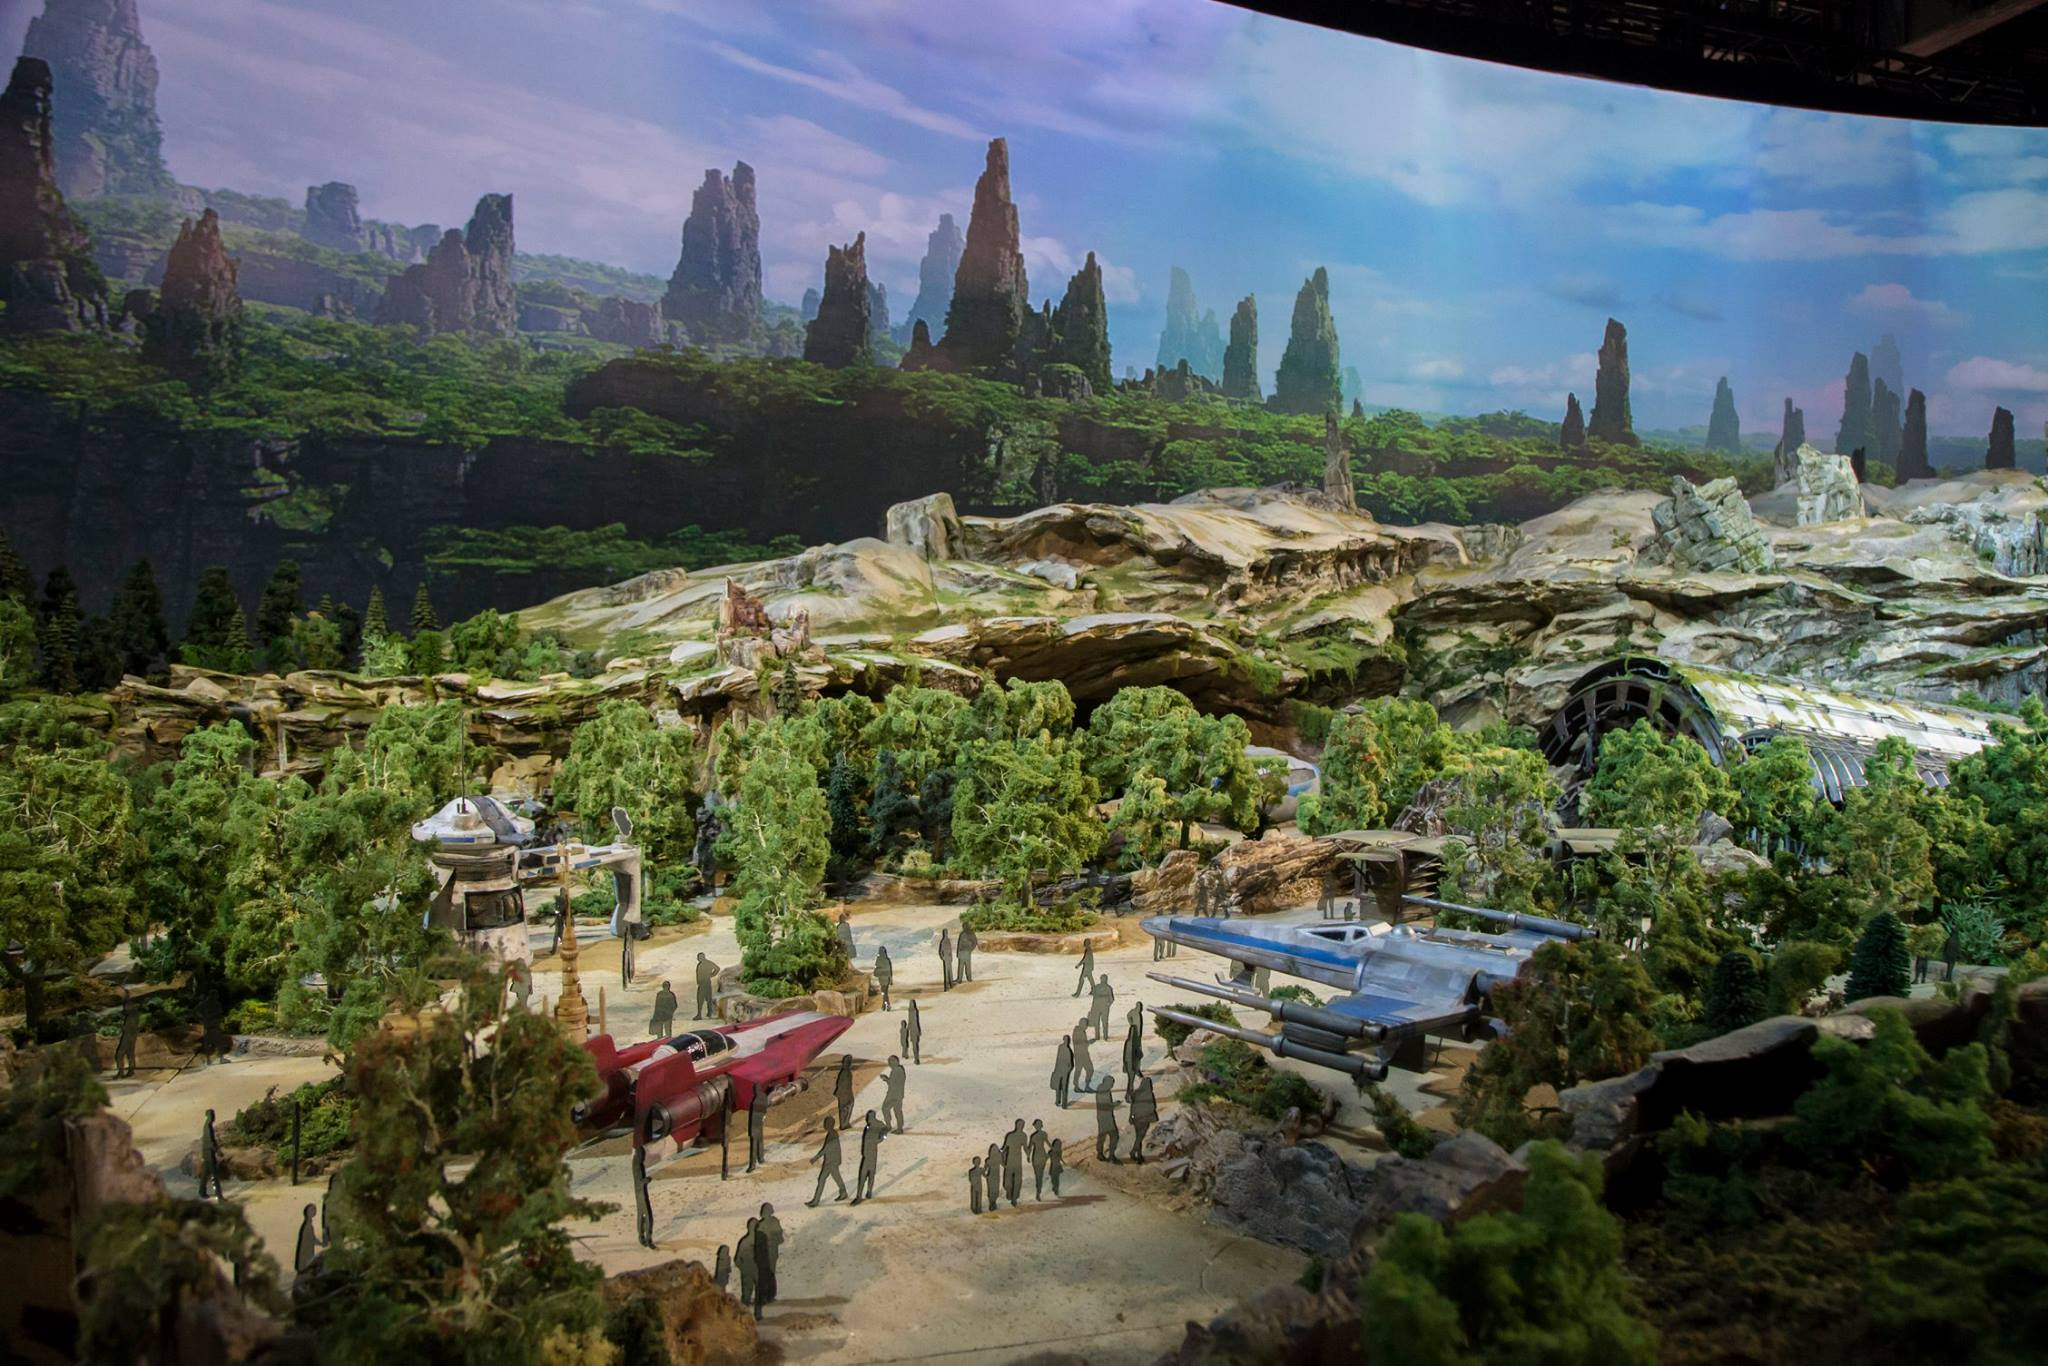 D23 Expo 2017: Here's a First Look at Star Wars Land, It's Huge